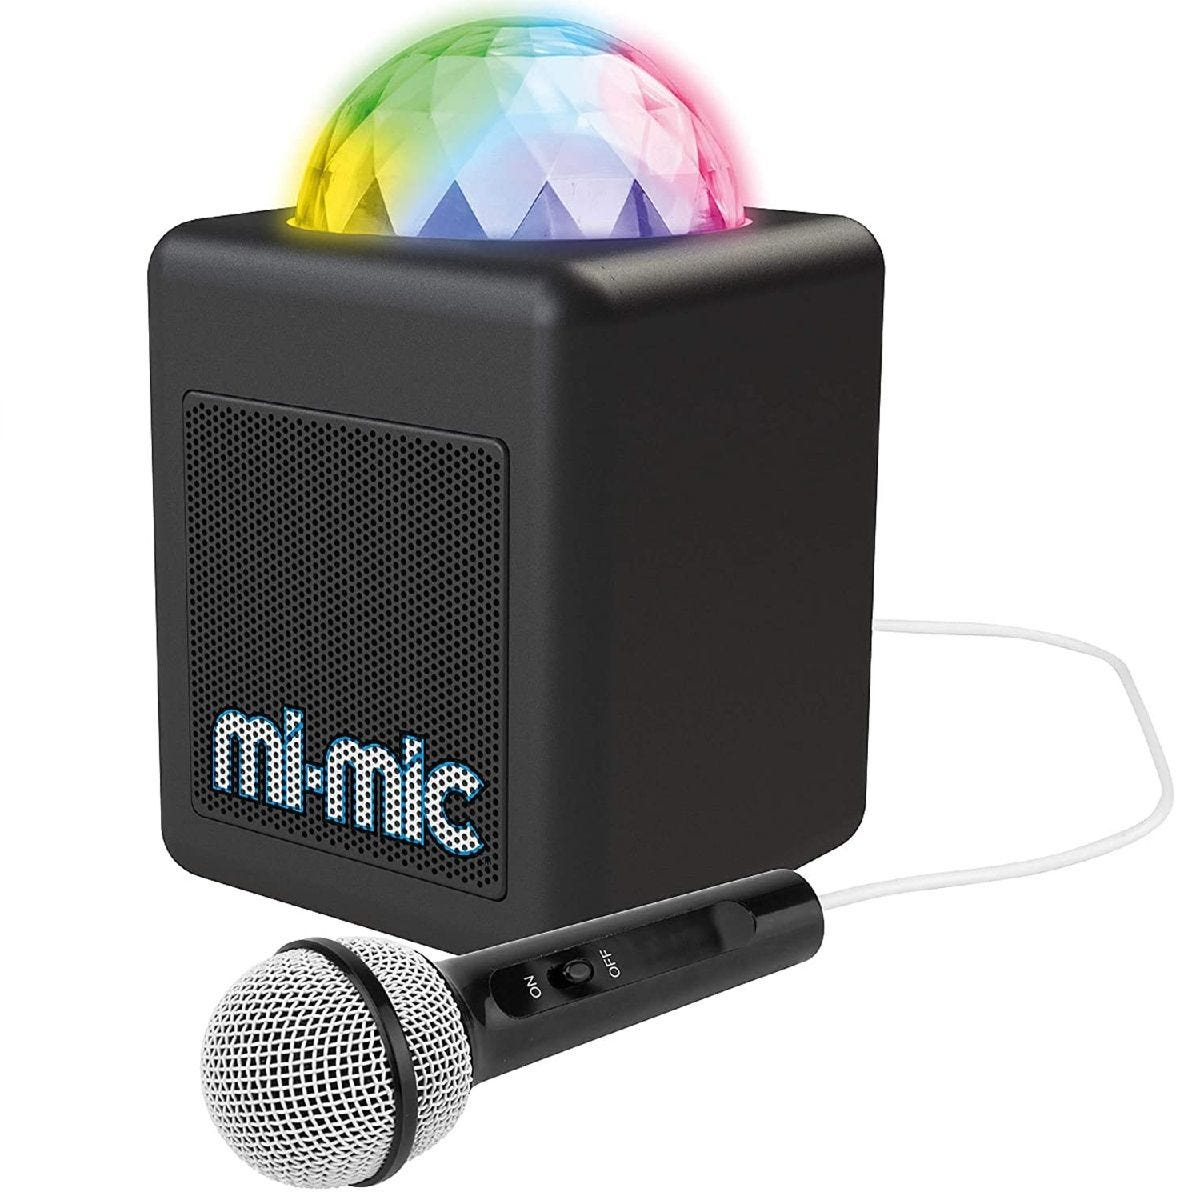 Mi-Mic TY6149 Mini Kids Karaoke Machine and Disco Cube Bluetooth Speaker with Mic & LED Lights - Black